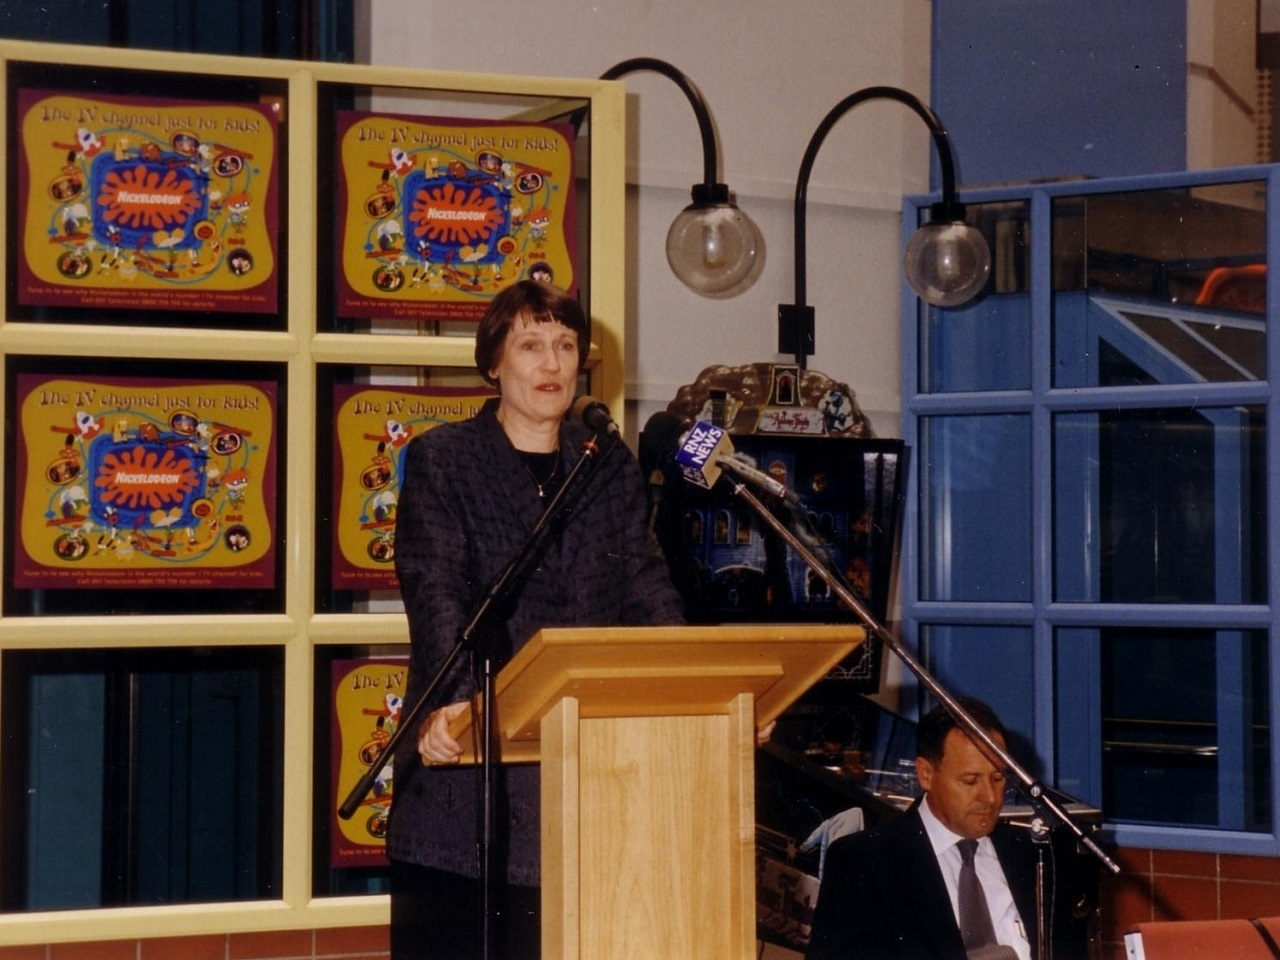 The new ward is opened in 2000 by Prime Minister Helen Clark